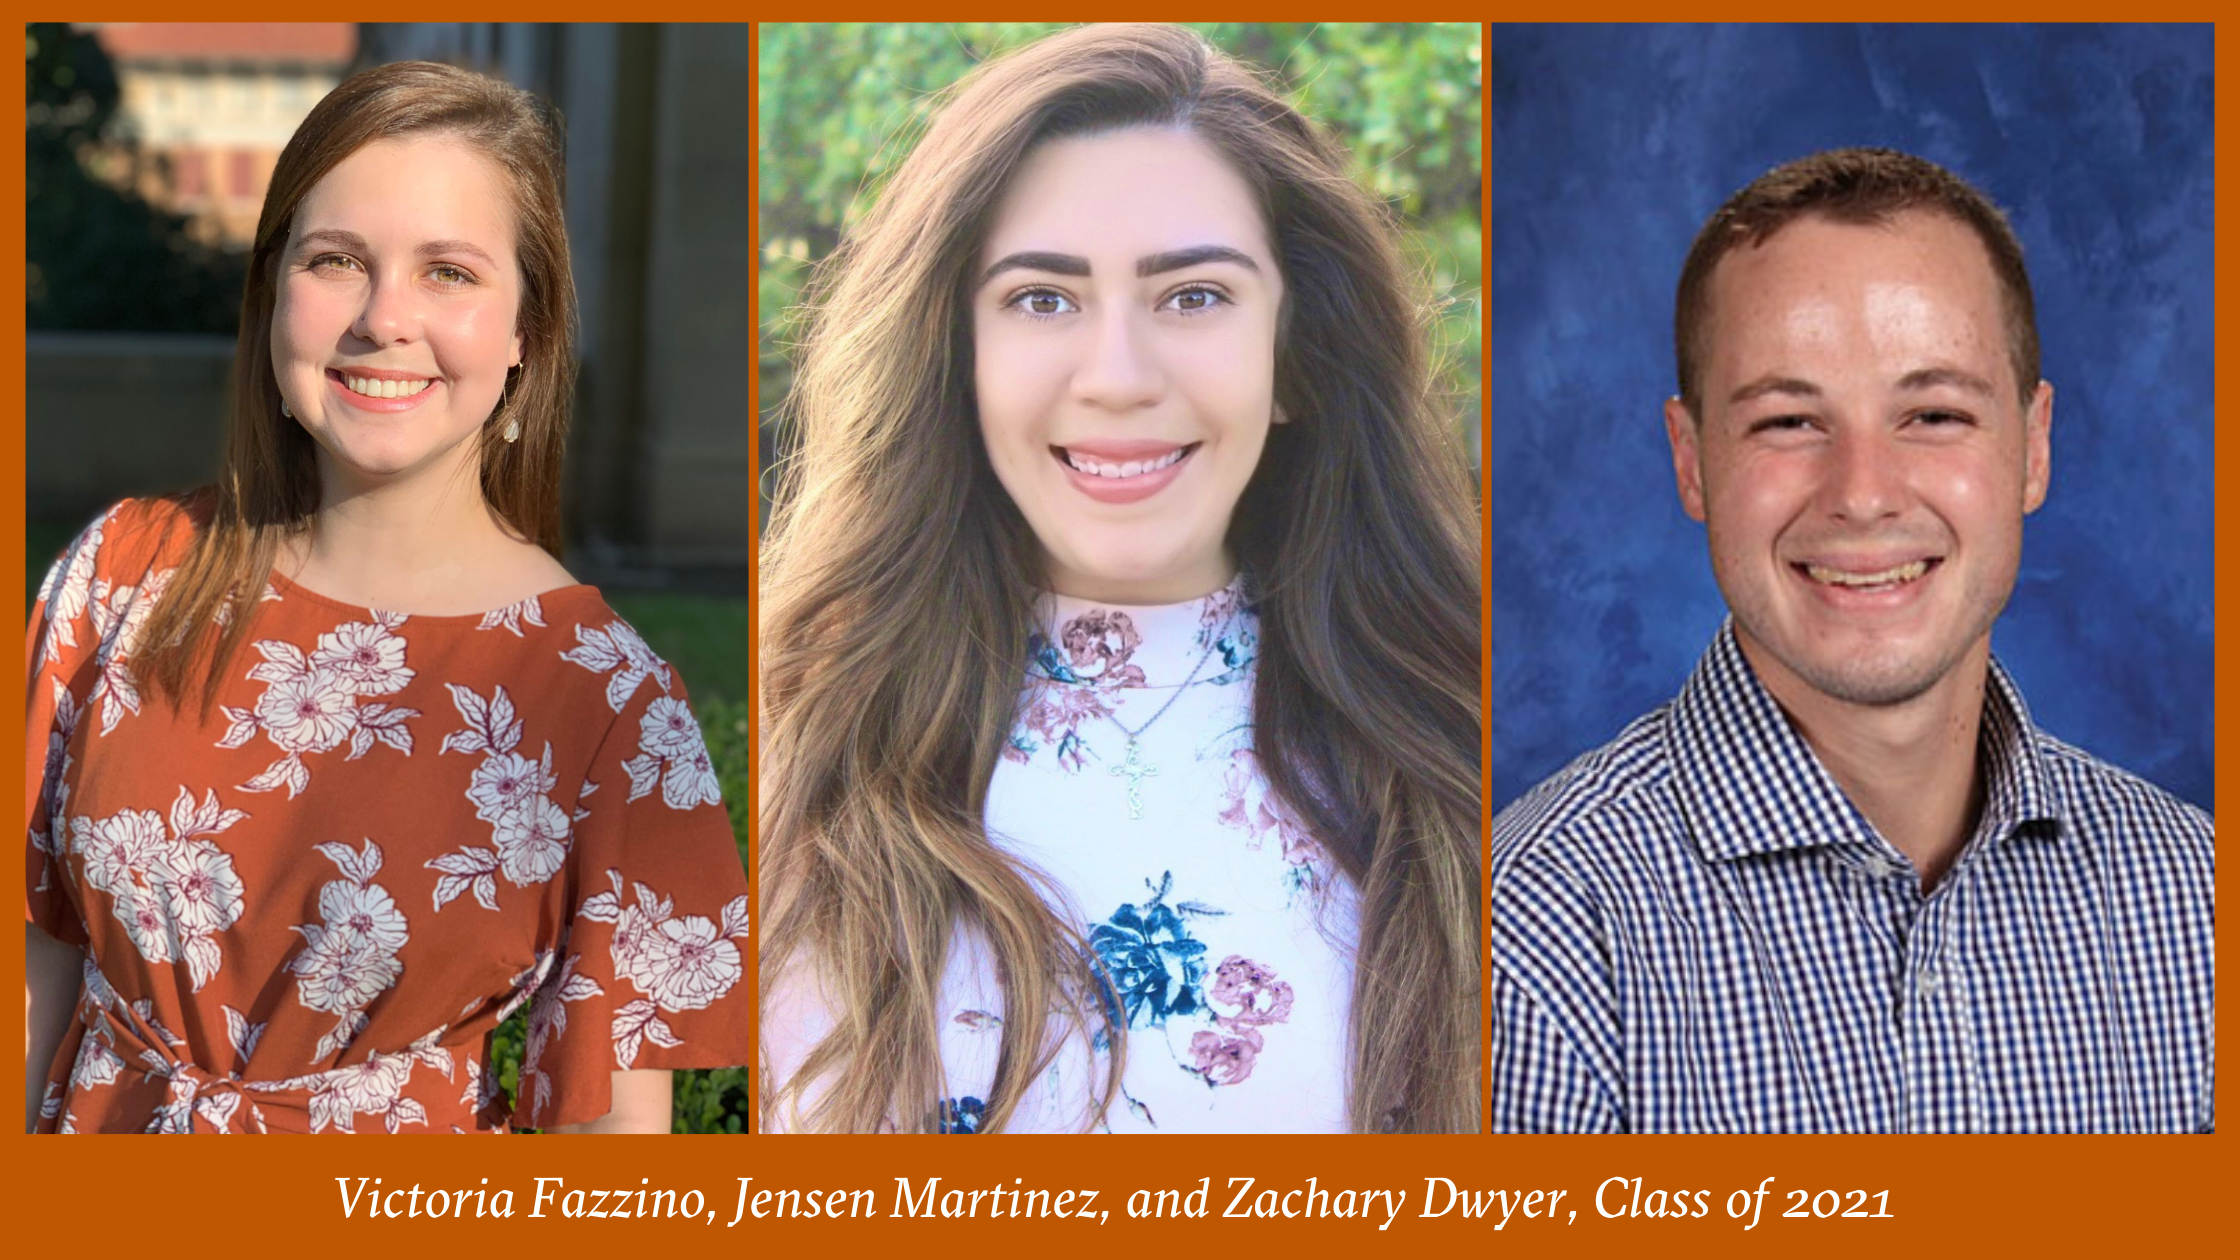 Headshots of Victoria Fazzino, Jensen Martinez, and Zachary Dwyer, Class of 2021 set against a burnt orange background with their names listed below.